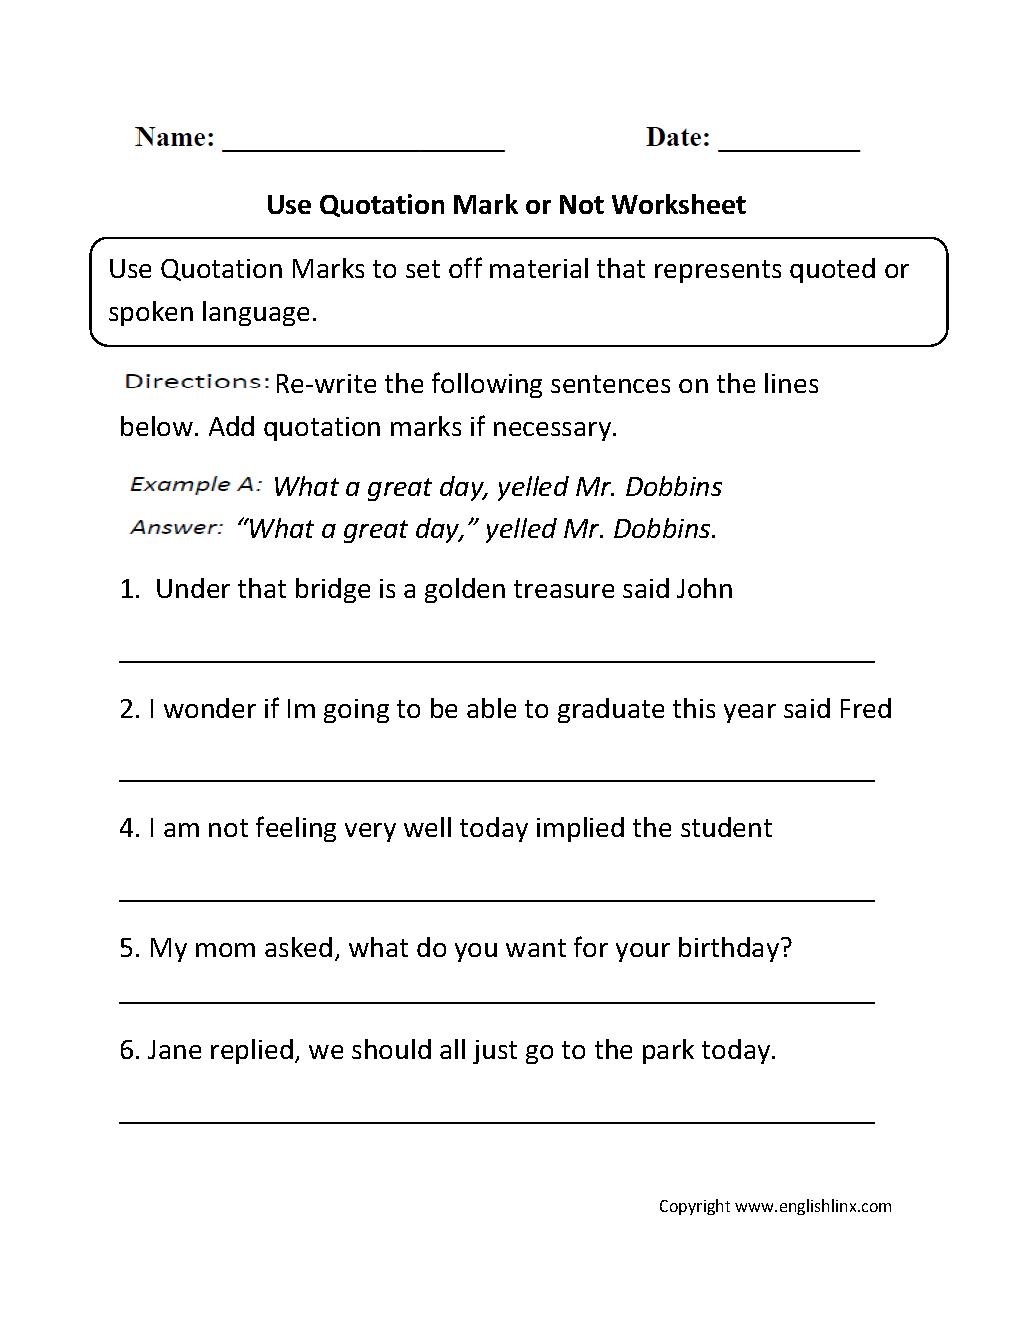 Worksheets Quotation Mark Worksheets punctuation worksheets quotation mark use or not worksheets